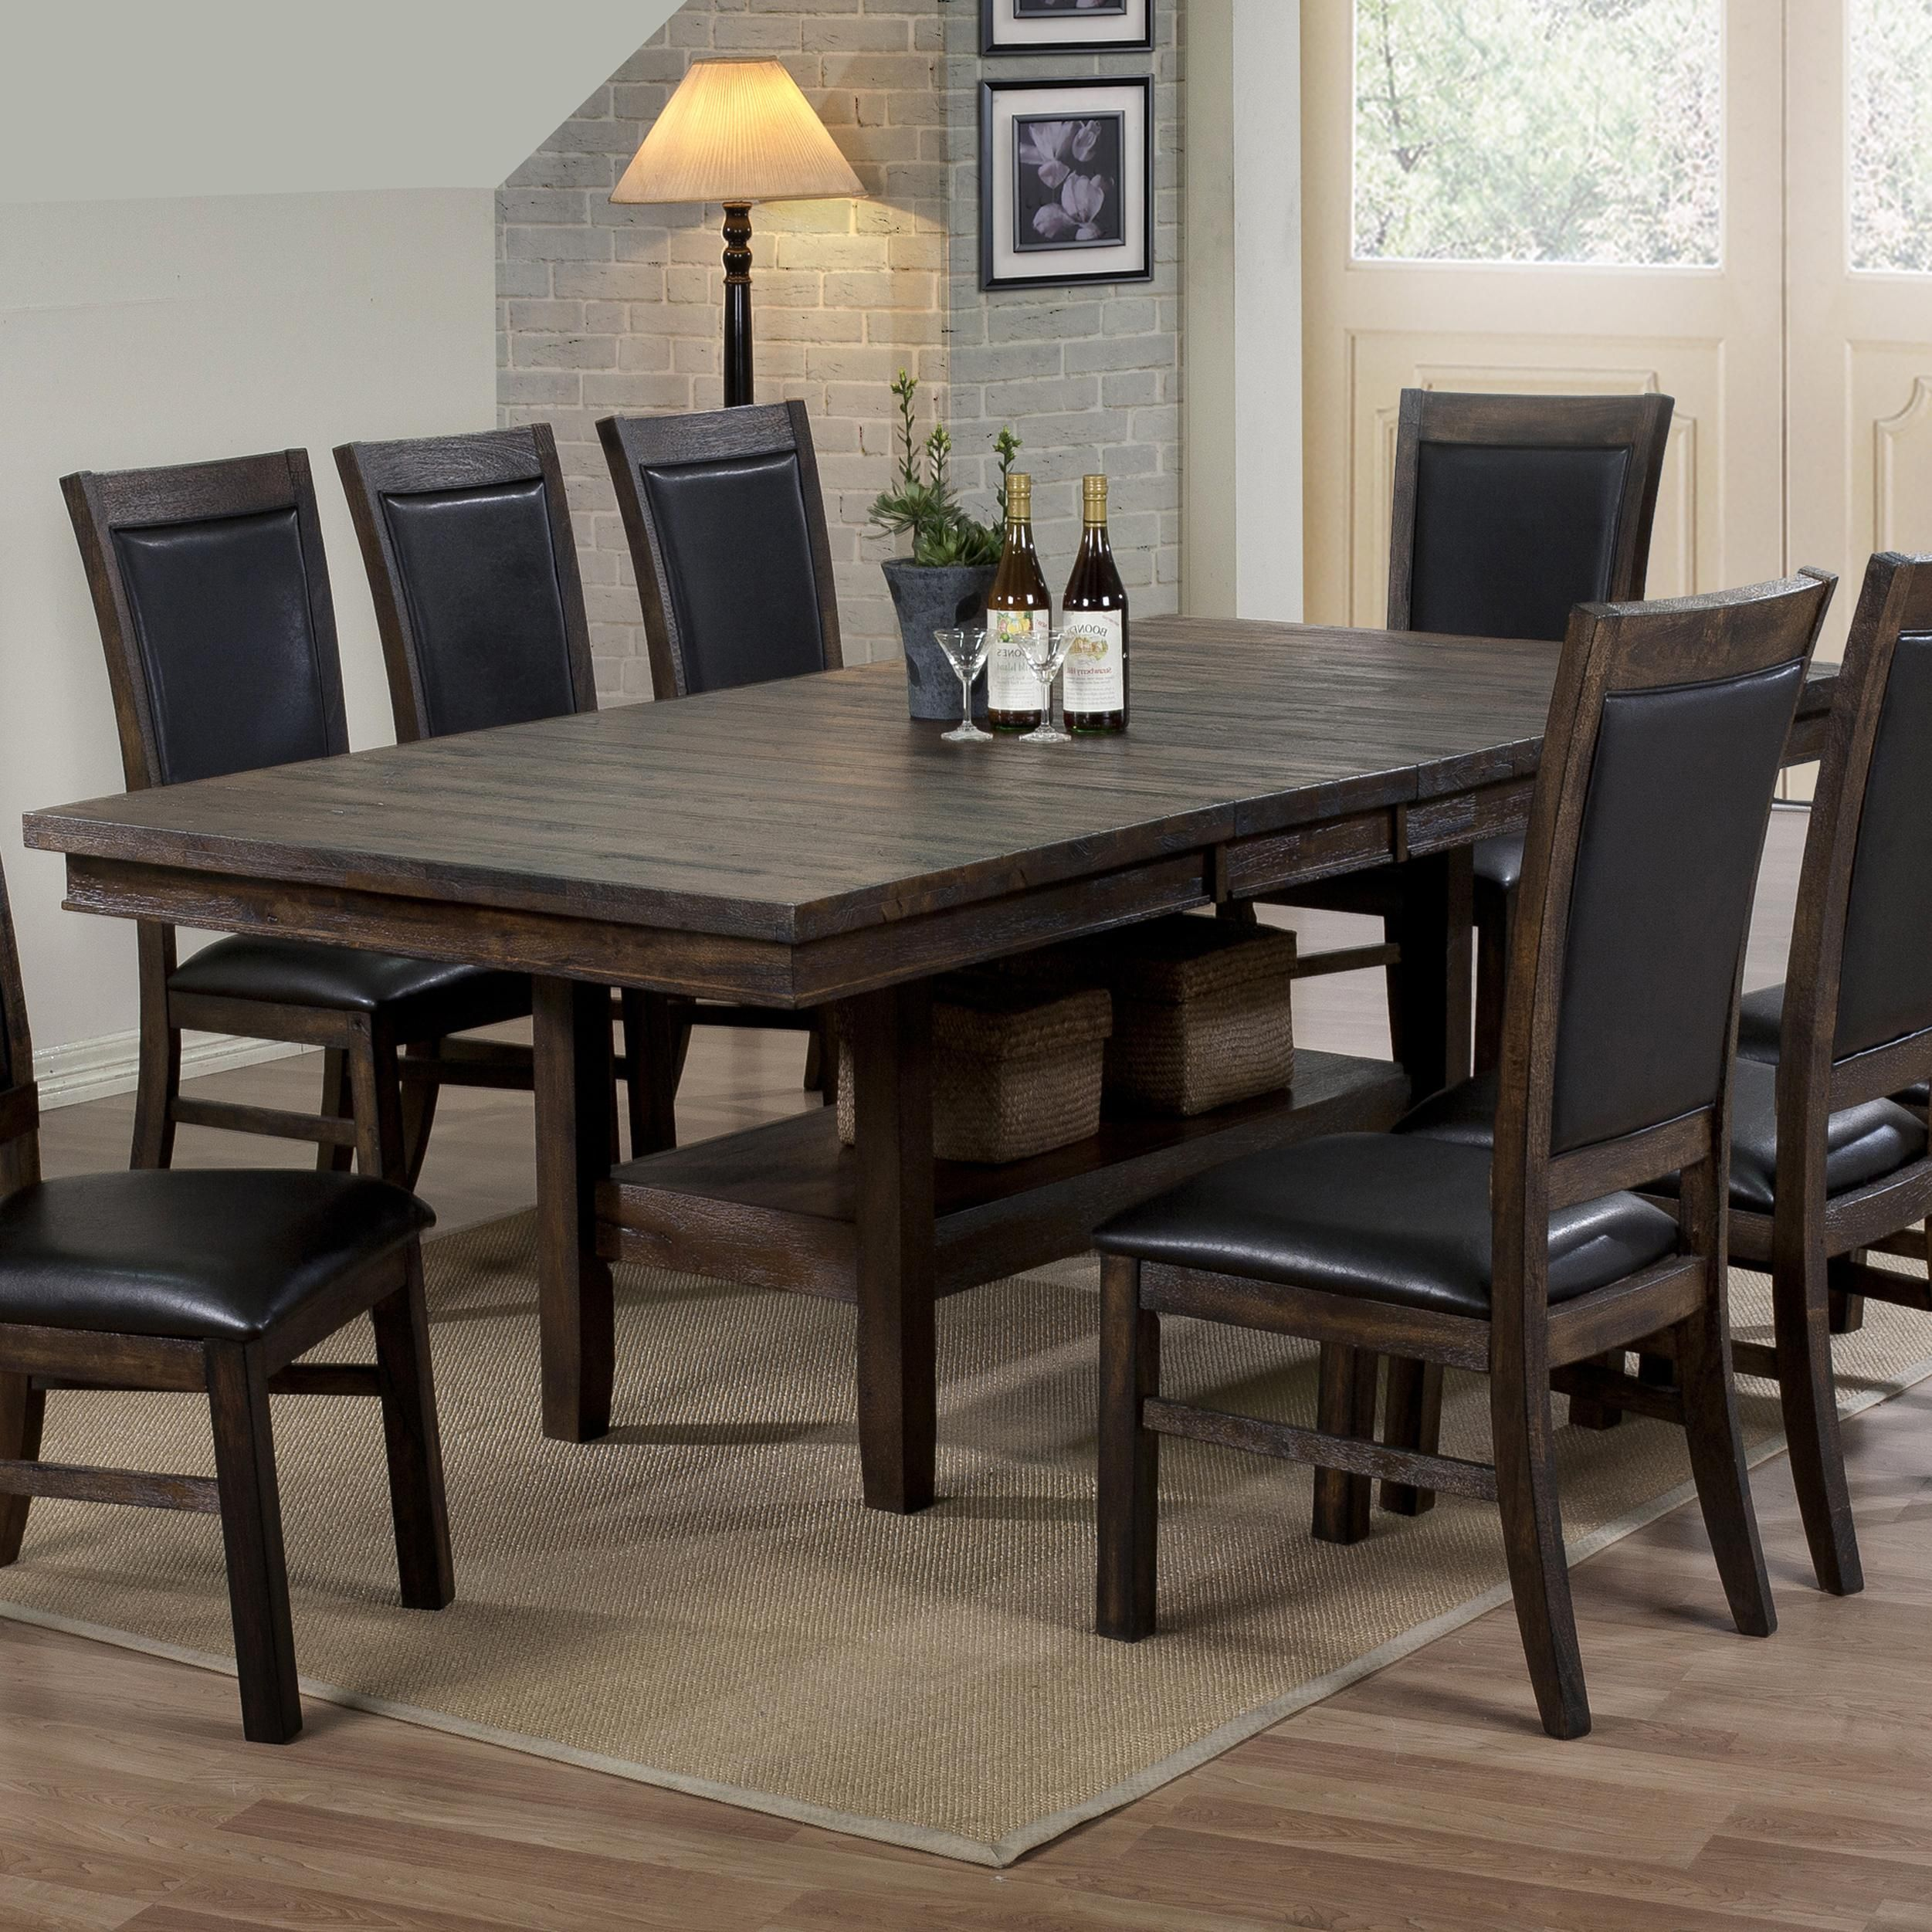 Sonoma Convertible Rectangle Table By Legends Furniture With